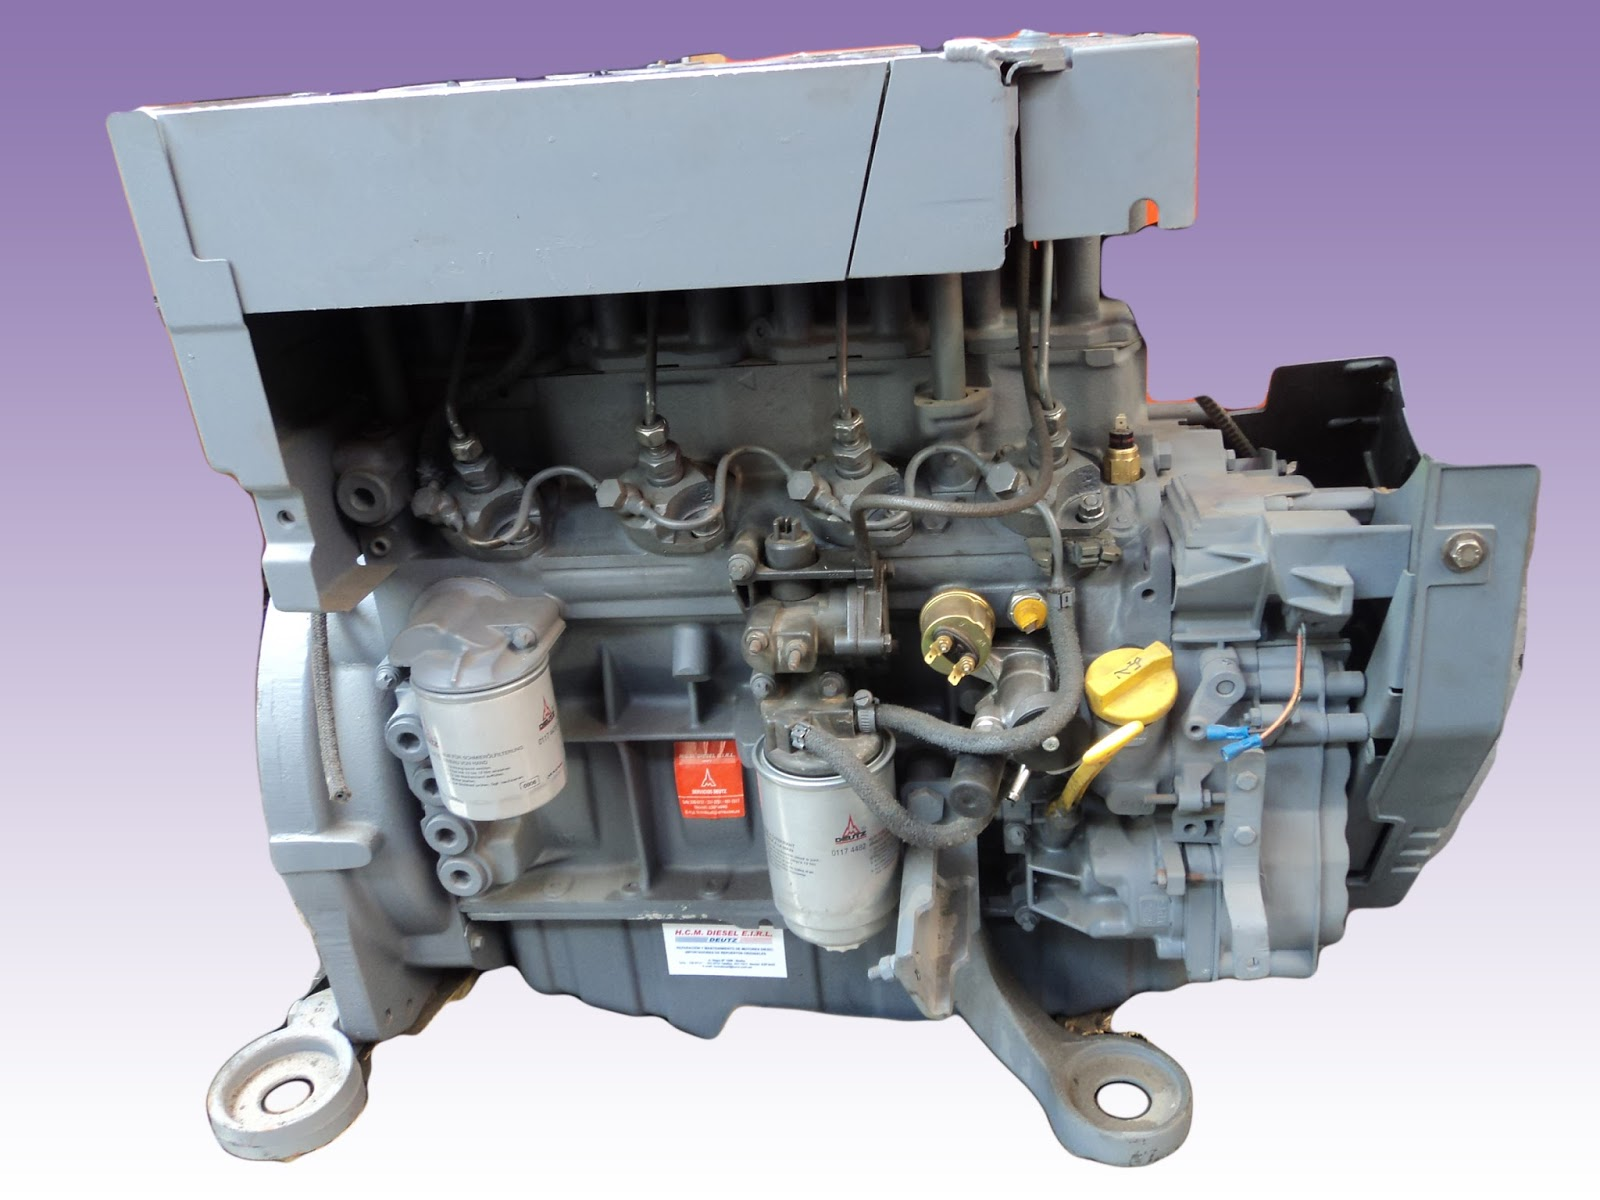 small resolution of engine deutz workshop manual report deutz o m manual with this manual del it will show you how to distinguish any problem from an oil change to a